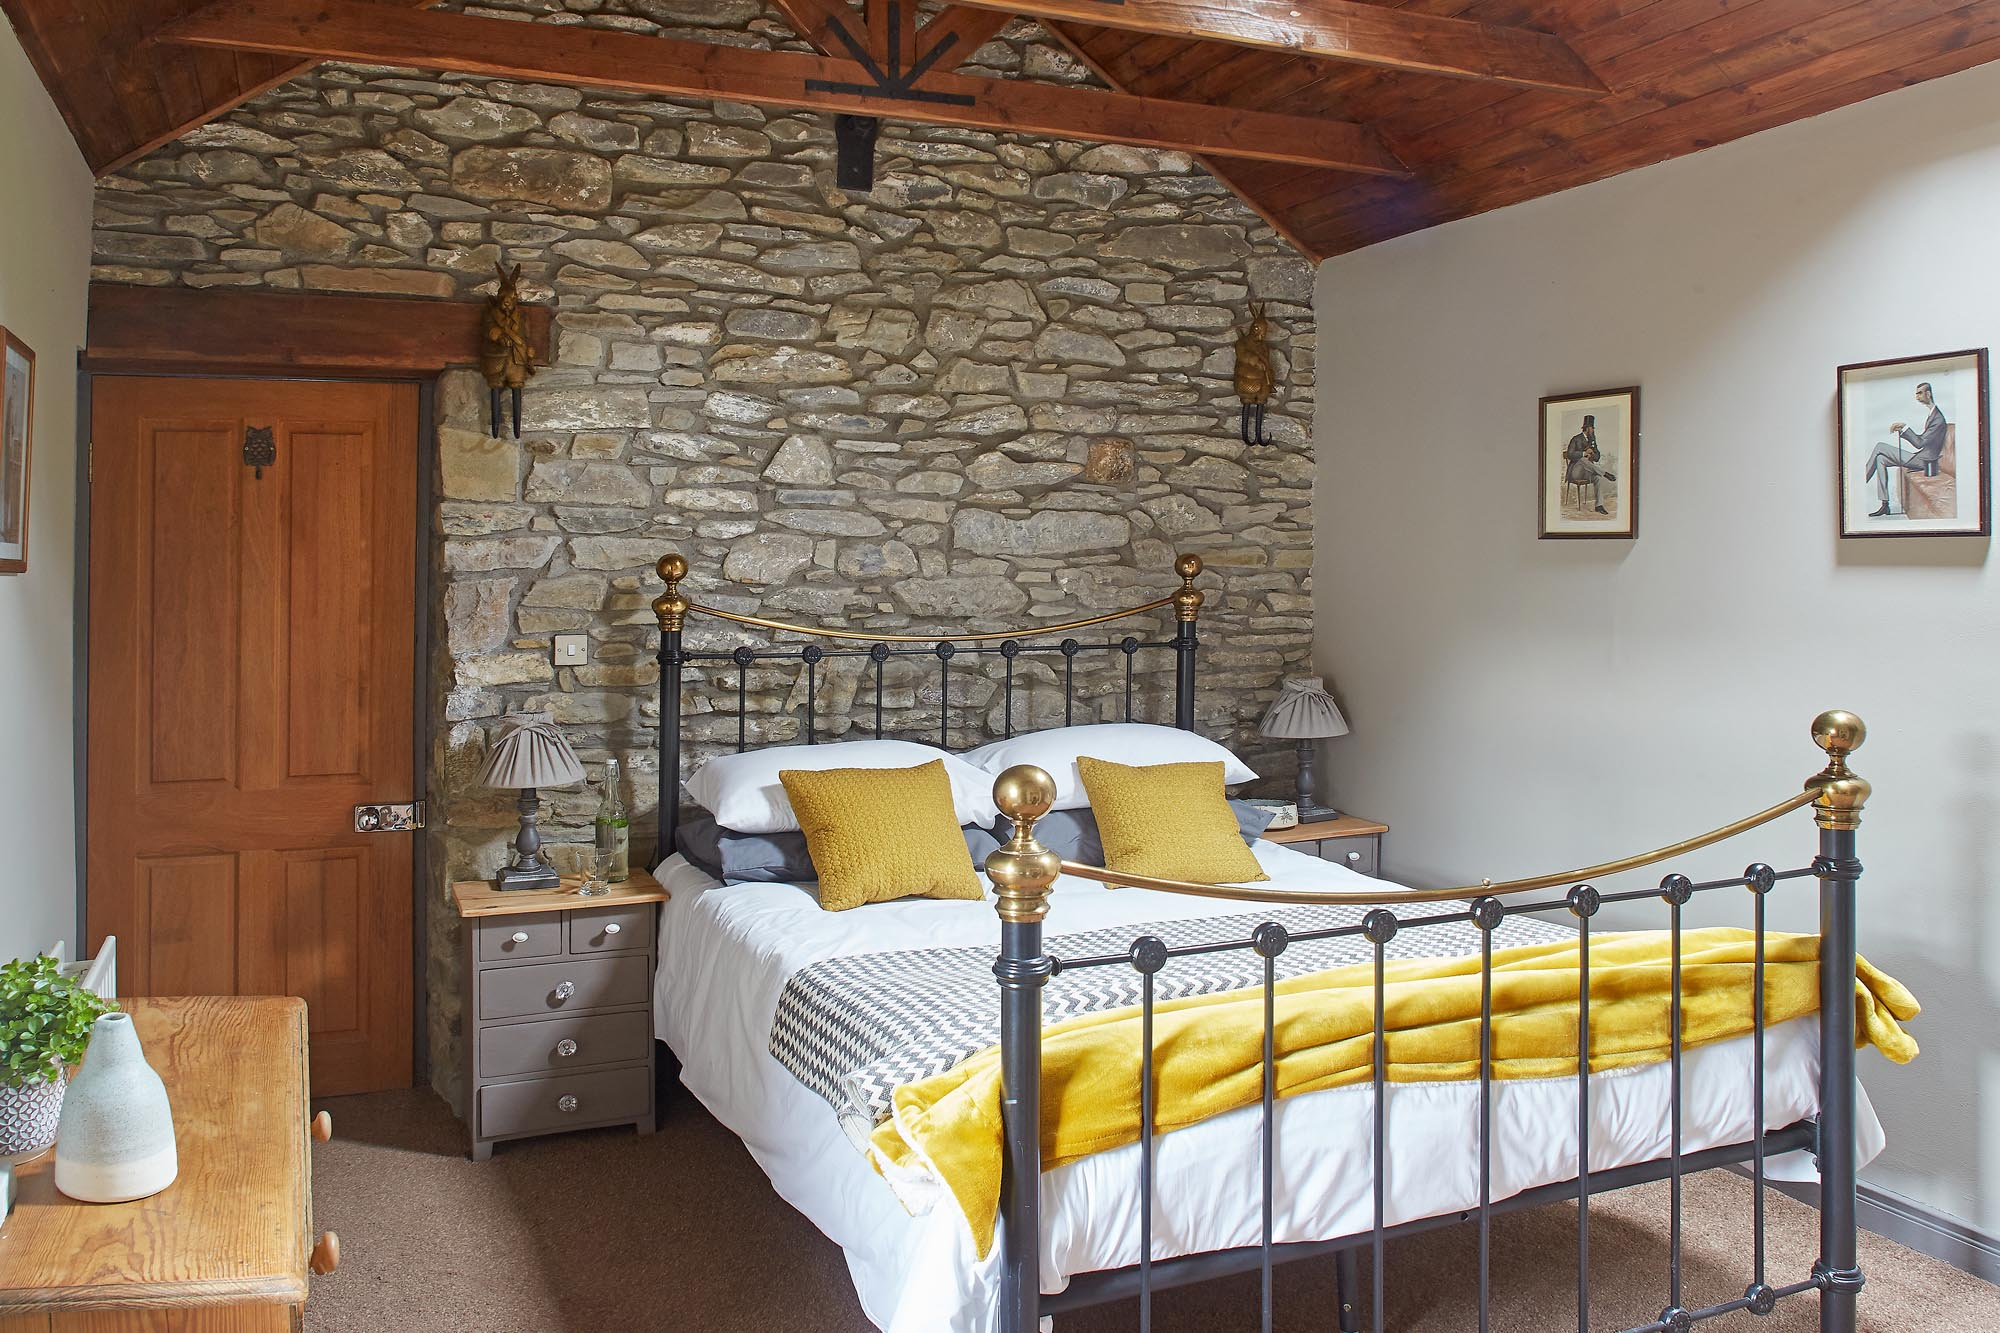 Converted barn guesthouse bedroom with stone walls and timbered ceiling